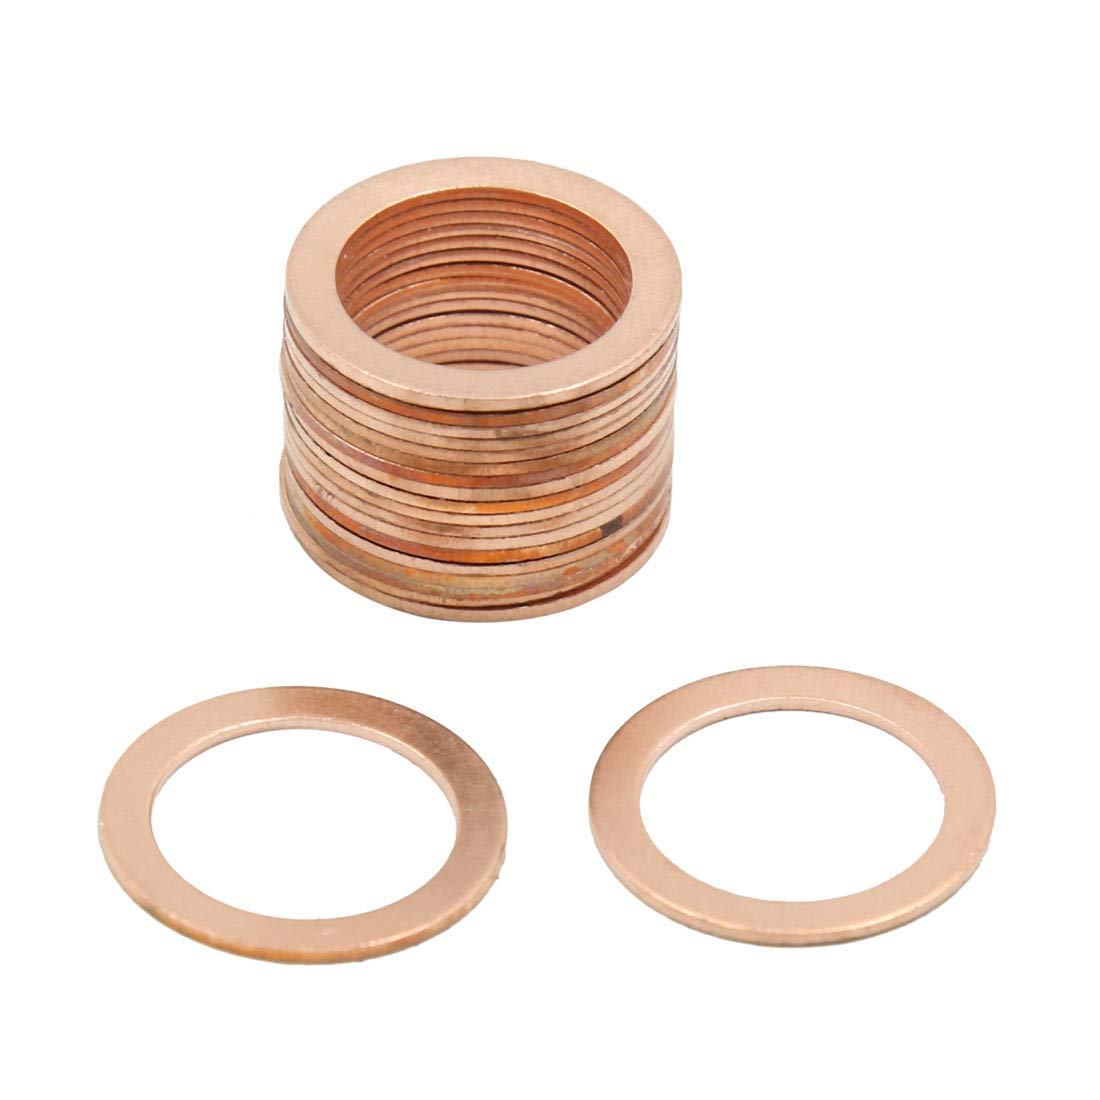 X AUTOHAUX 18mm Inner Dia Copper Crush Washers Flat Sealing Gaskets Rings 20pcs